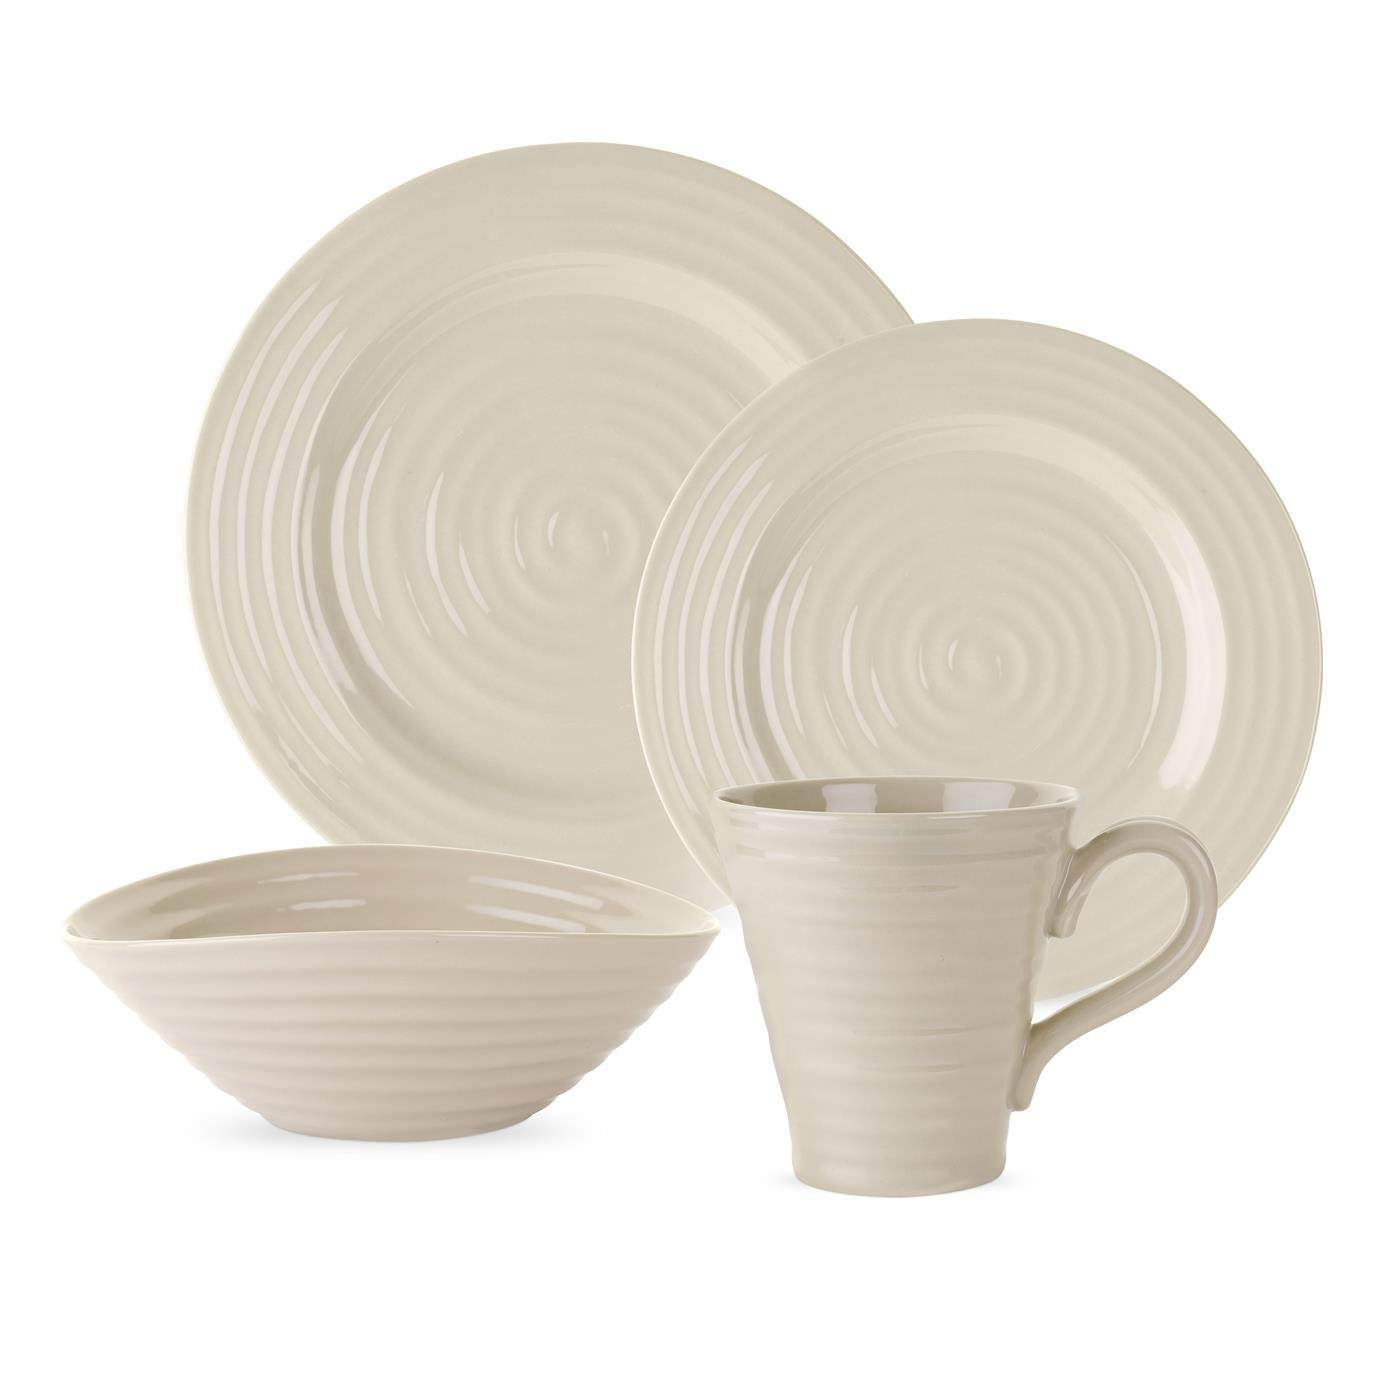 Sophie Conran Pebble 4pc Place Setting